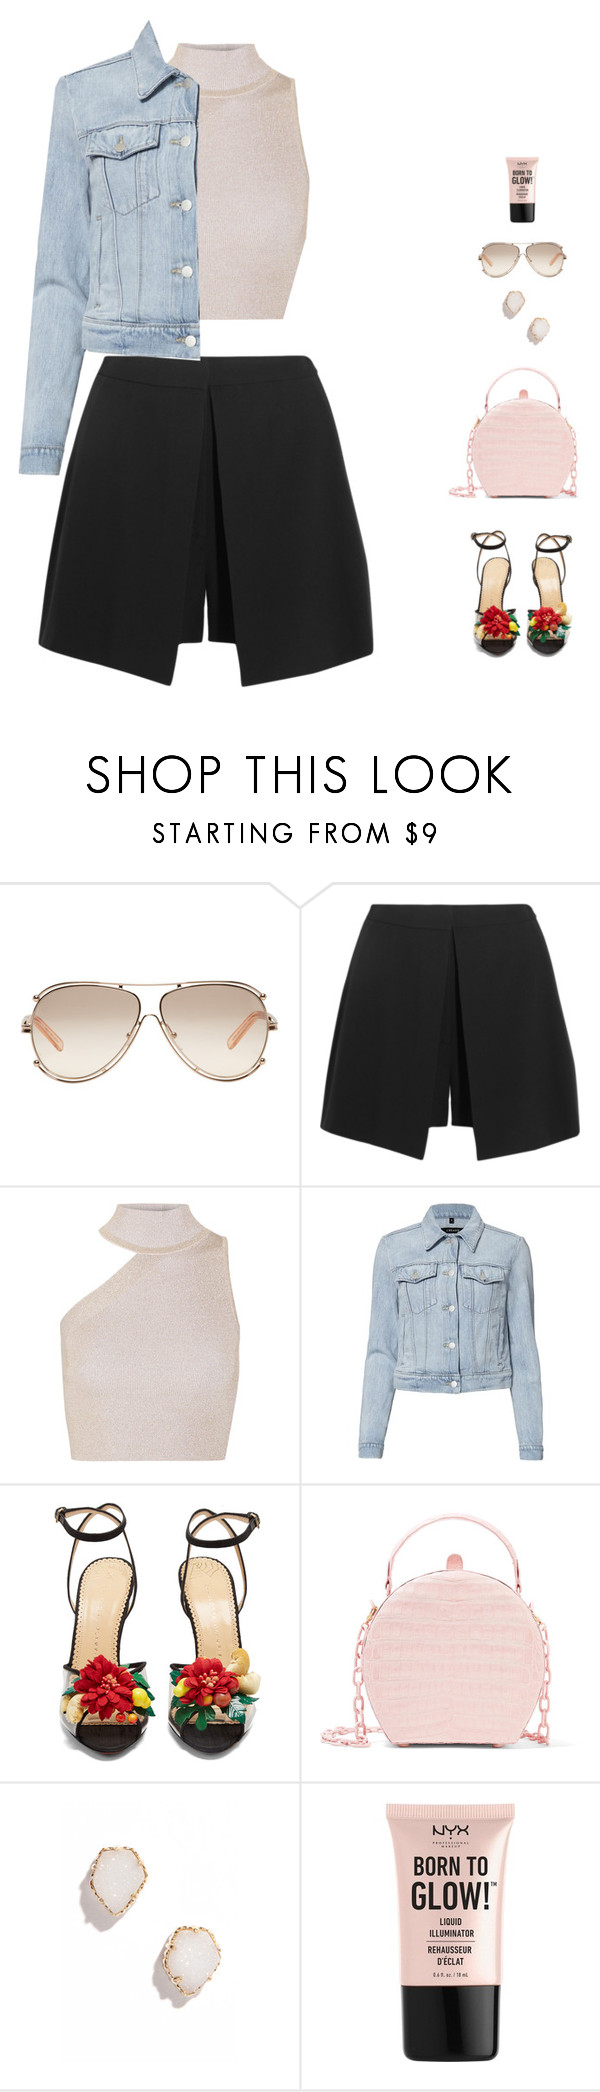 """""""casual elegance"""" by candynena228 ❤ liked on Polyvore featuring Chloé, Alexander McQueen, Cushnie Et Ochs, J Brand, Charlotte Olympia, Nancy Gonzalez, Kendra Scott and NYX"""